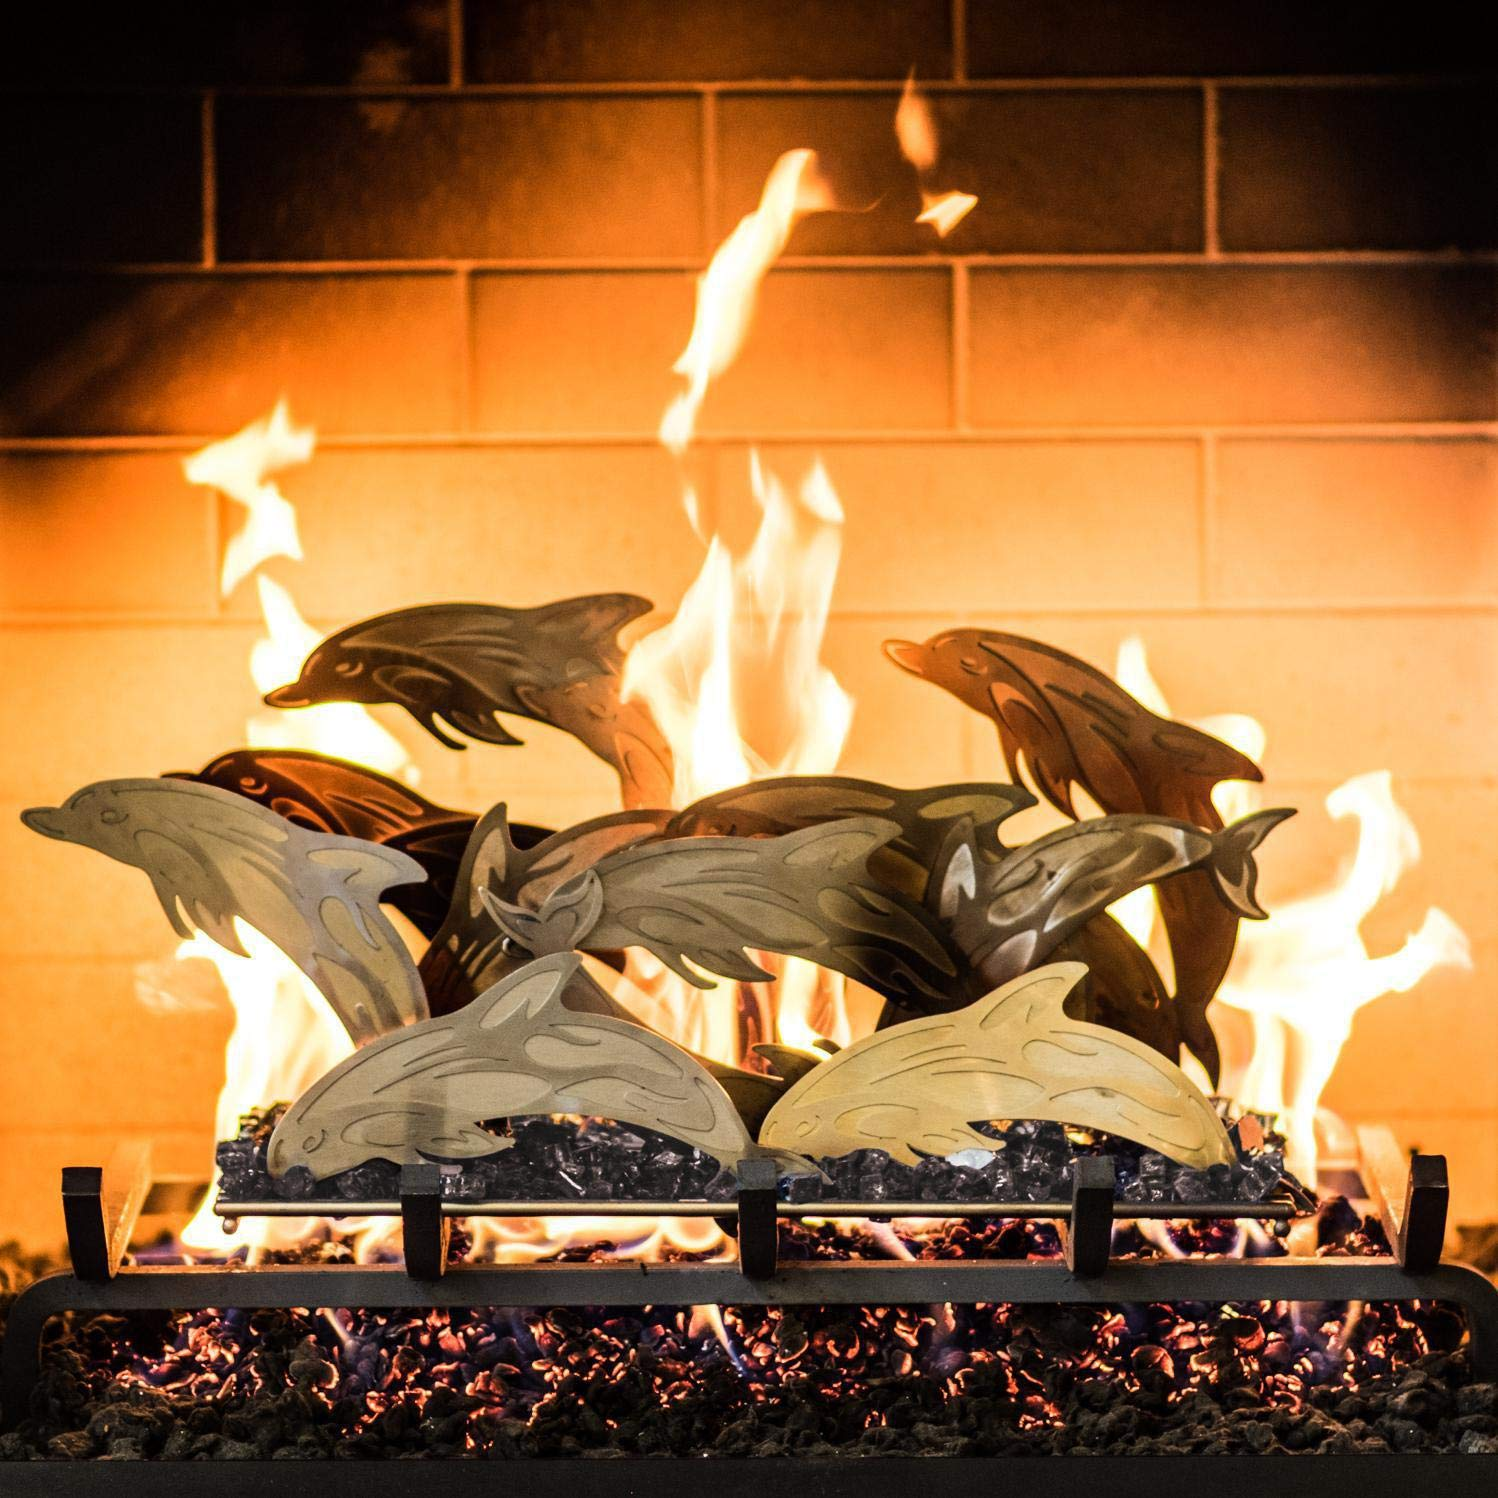 Lakeview Outdoor Designs Fireplace Sculpture - Dolphin Seascape w/Monochrome Gray Fire Glass (Burner Not Included) by Lakeview Outdoor Designs